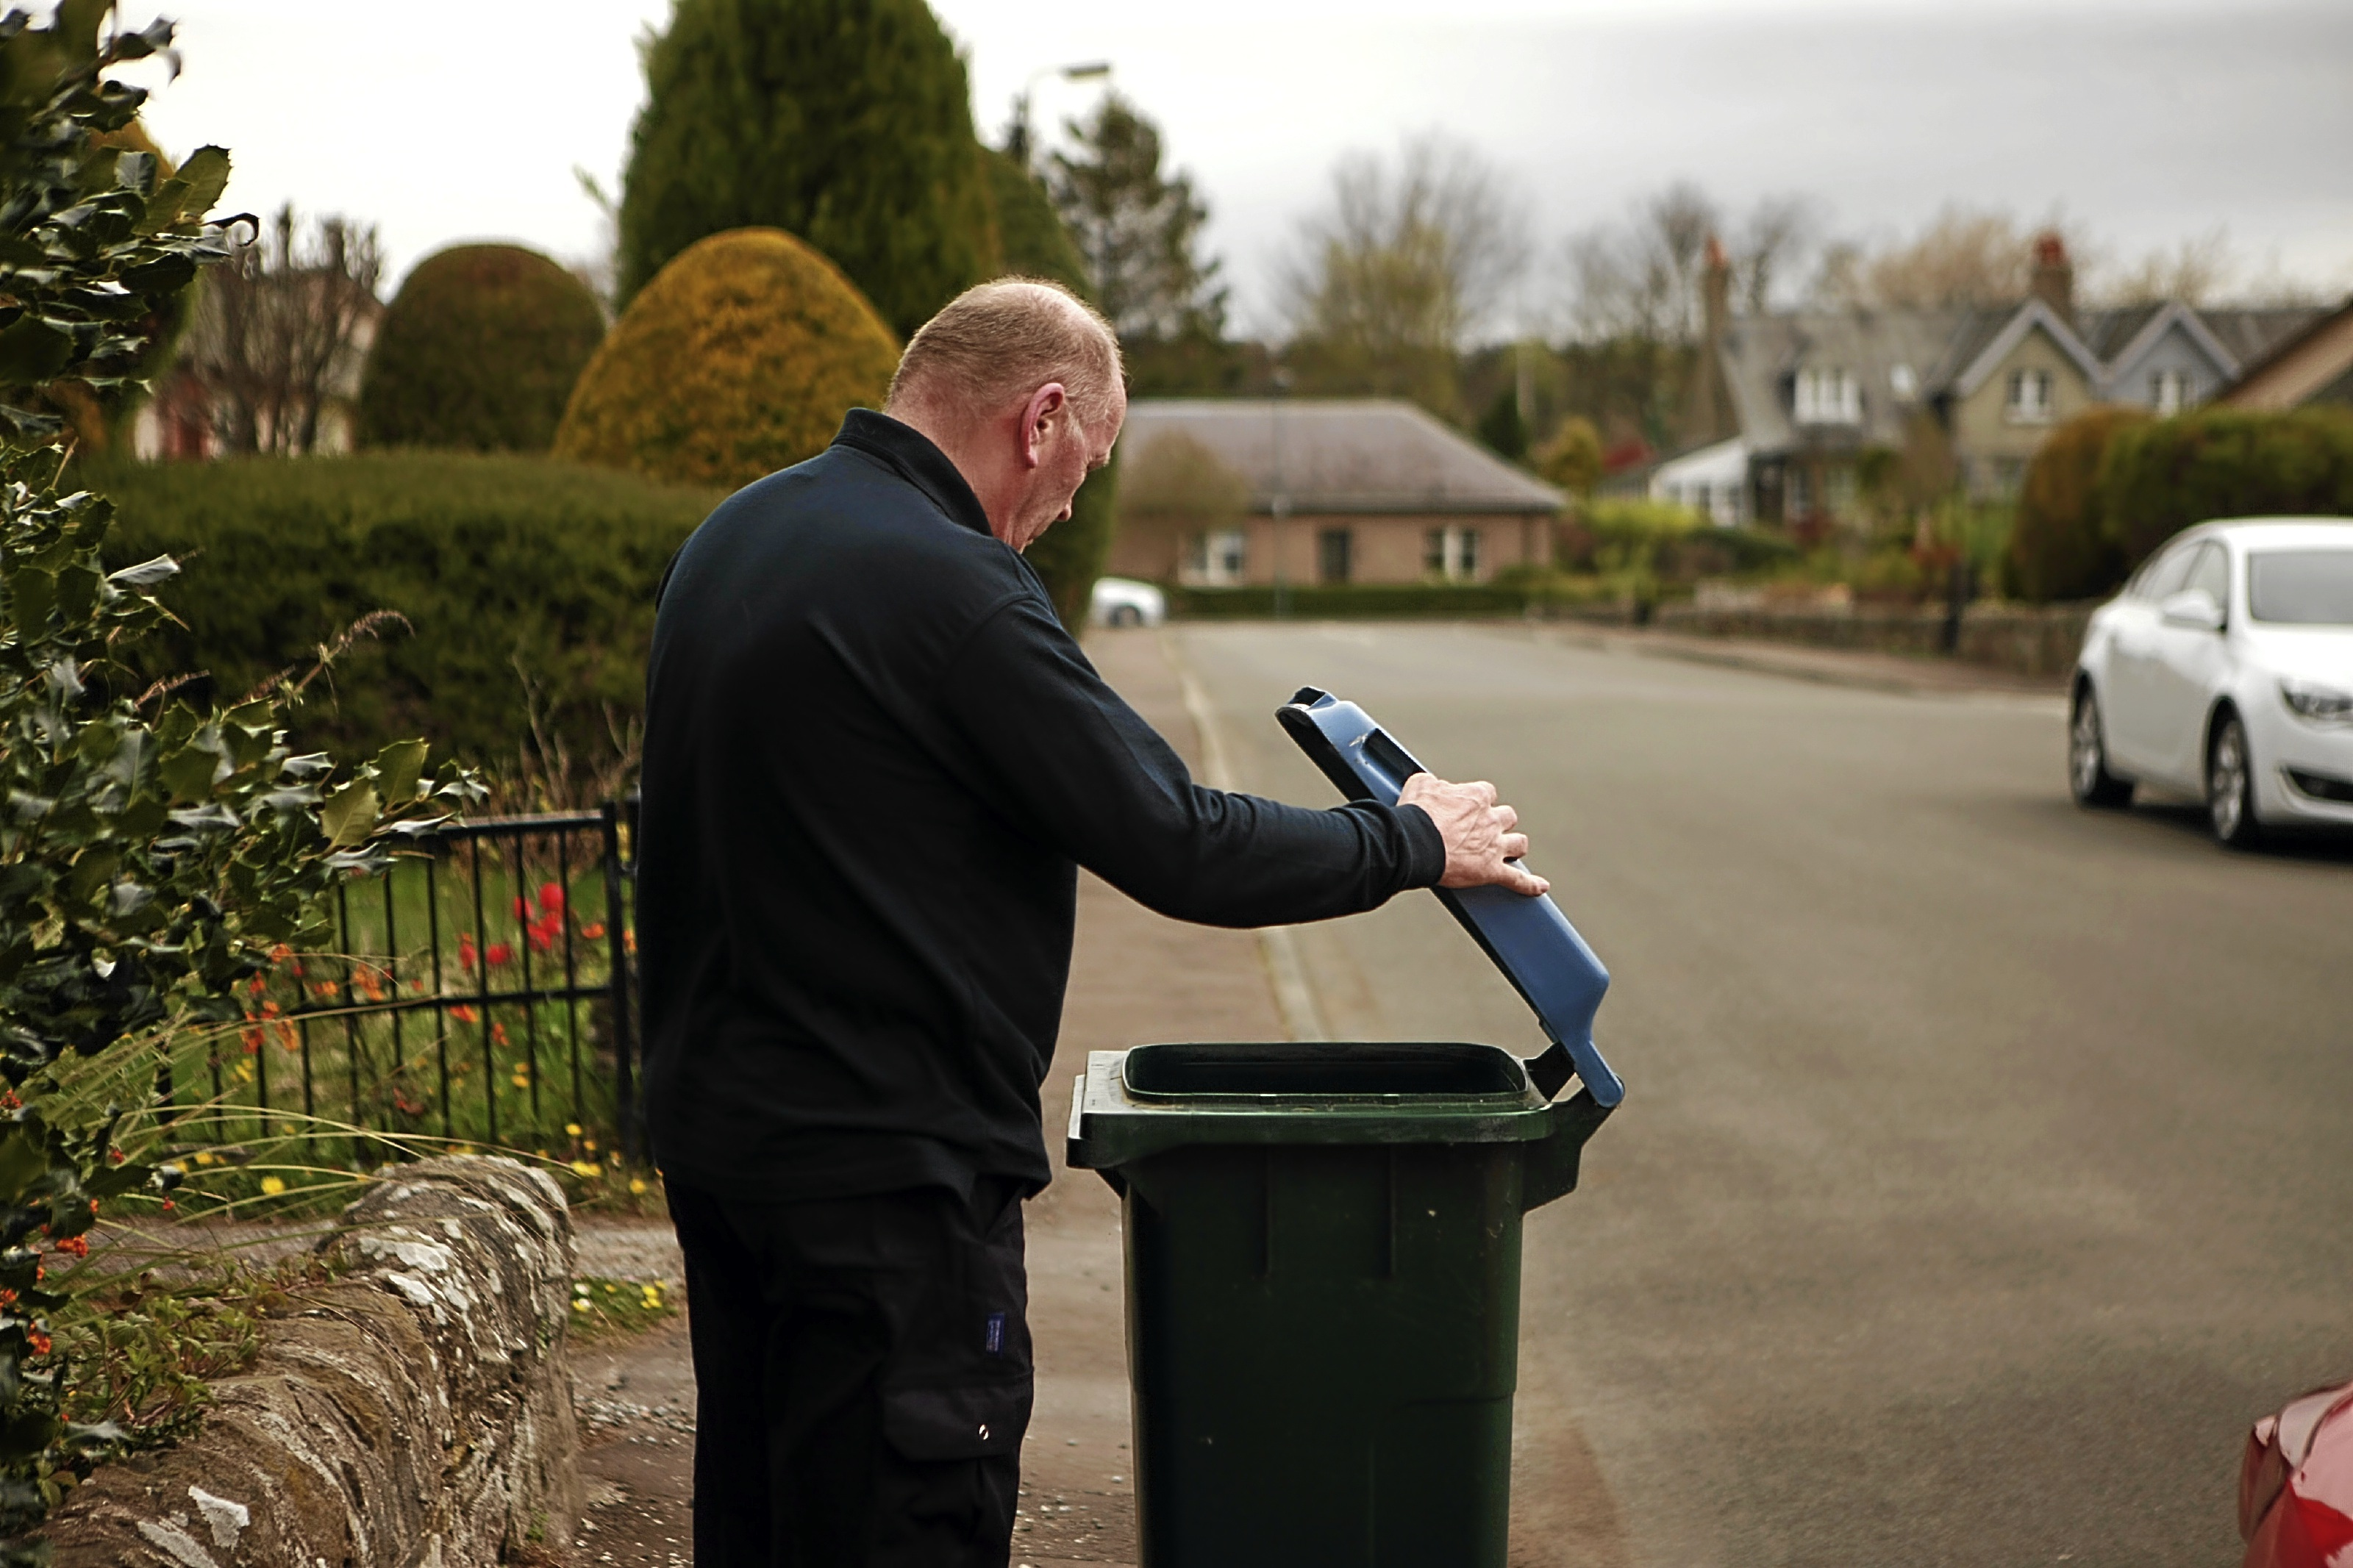 Residents in Longforgan are visited by bin inspectors should they request extra capacity for their rubbish disposal.